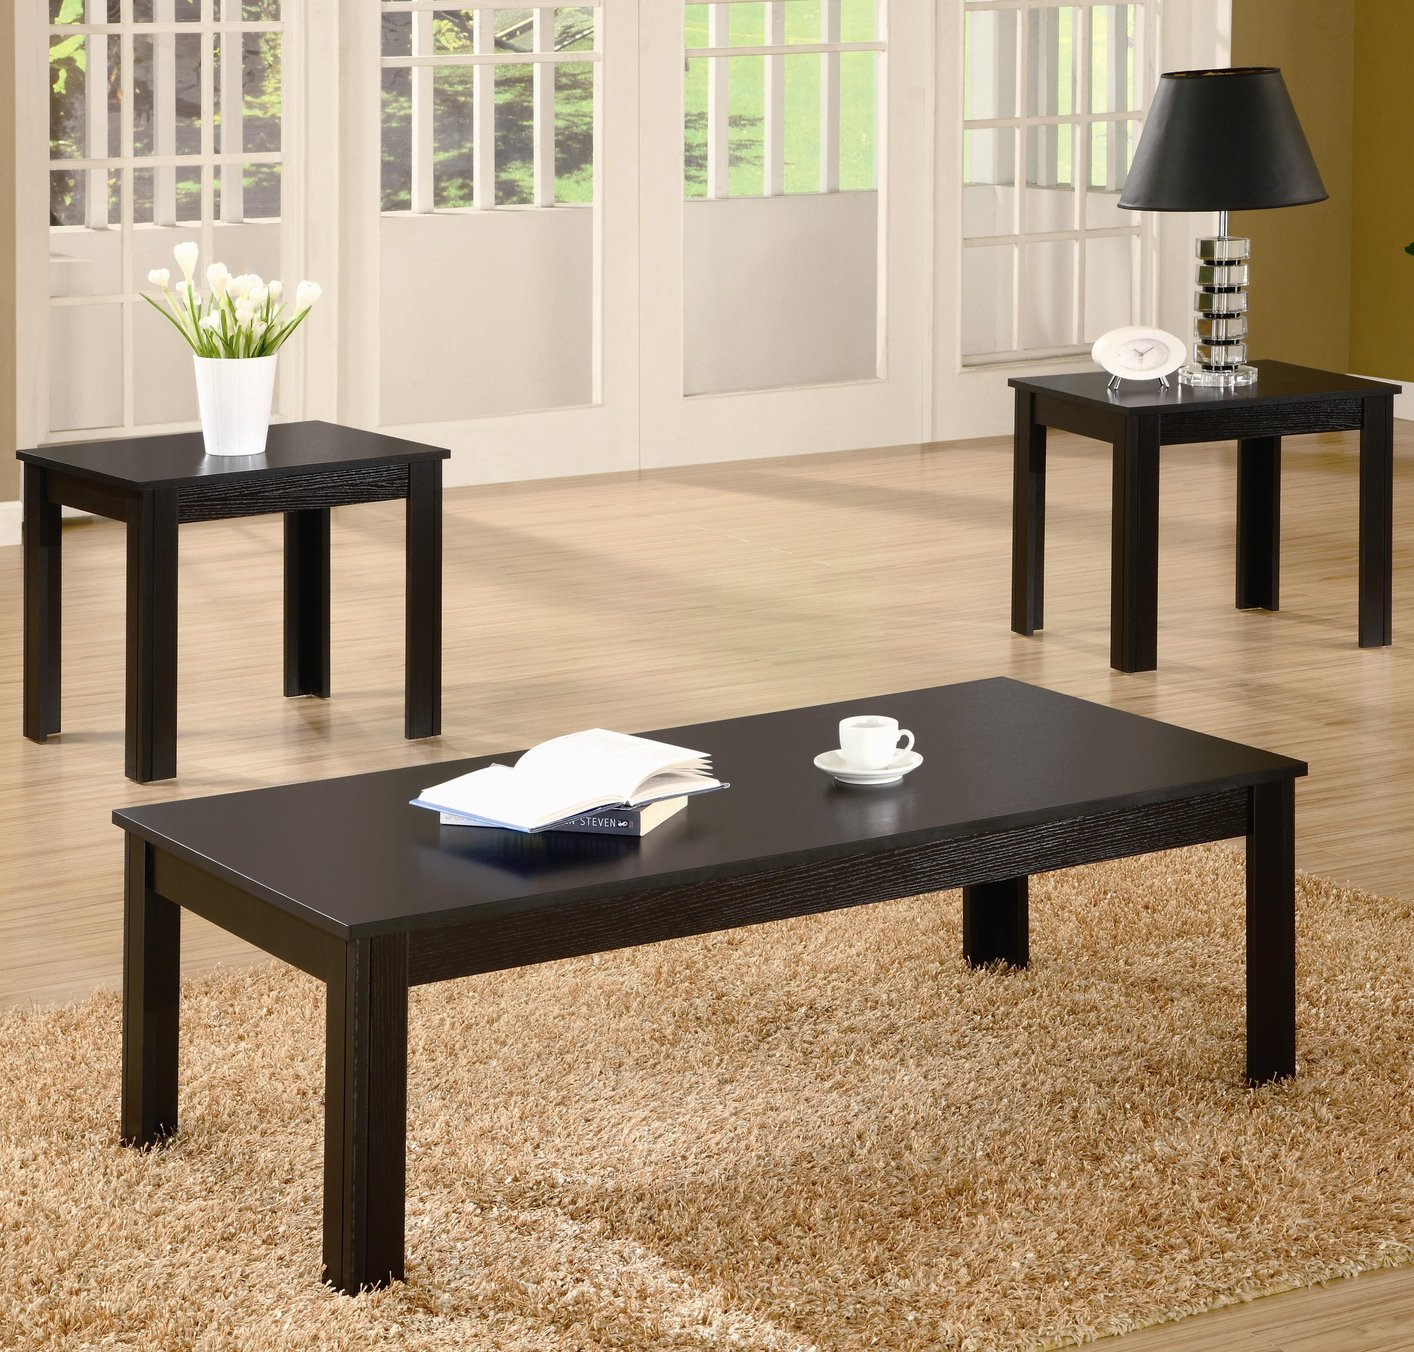 441ed1623c1f Black Wood Coffee Table Set - Steal-A-Sofa Furniture Outlet Los Angeles CA